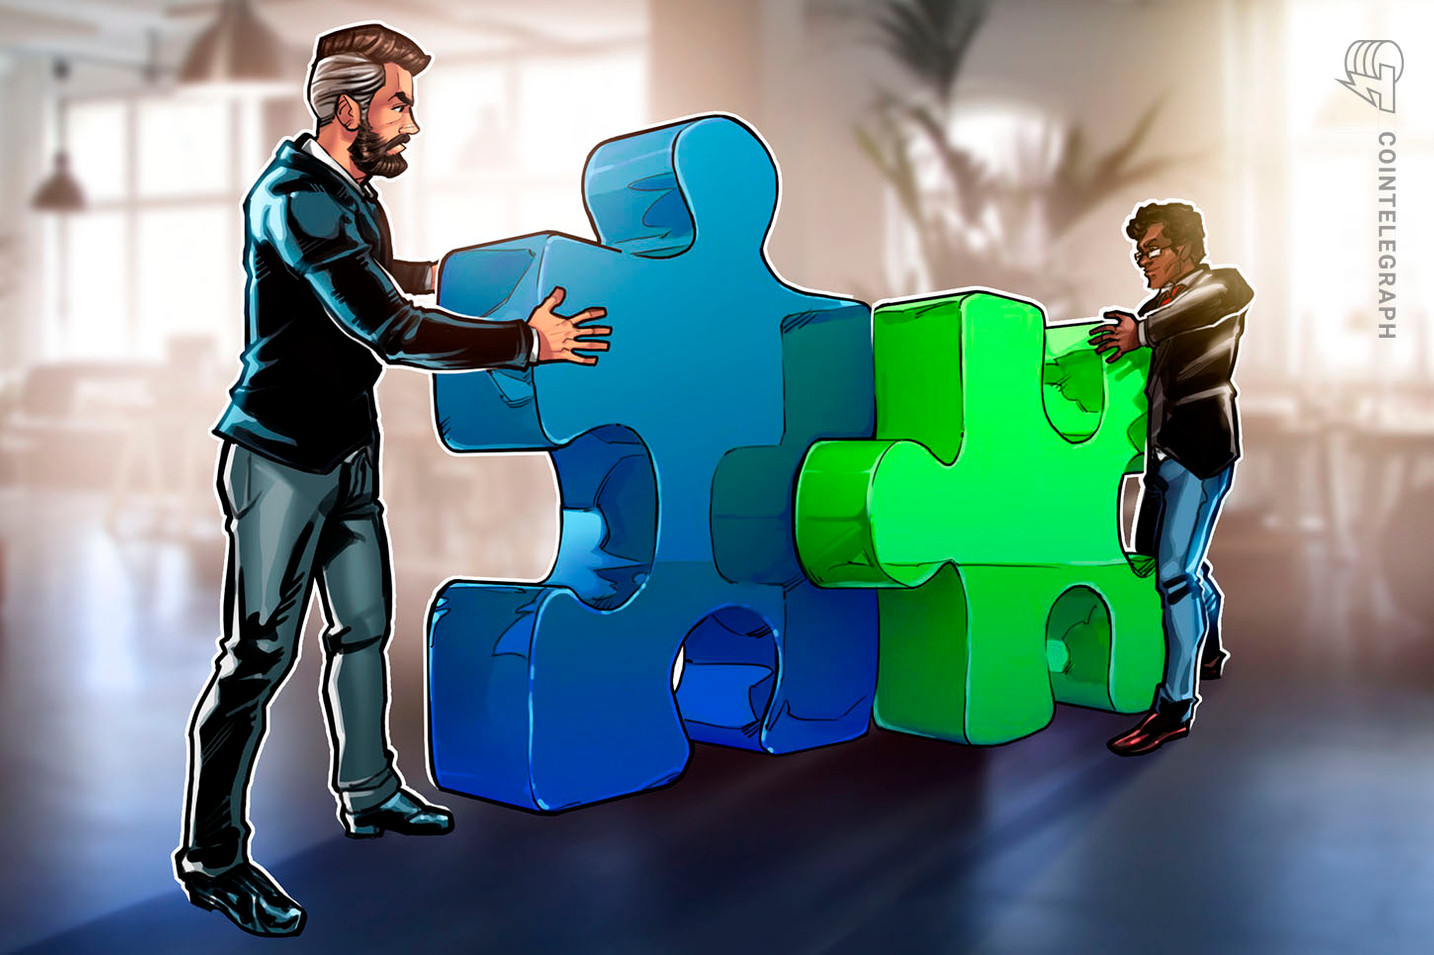 Major payments firm SIA to launch DLT-based secondary credit marketplace